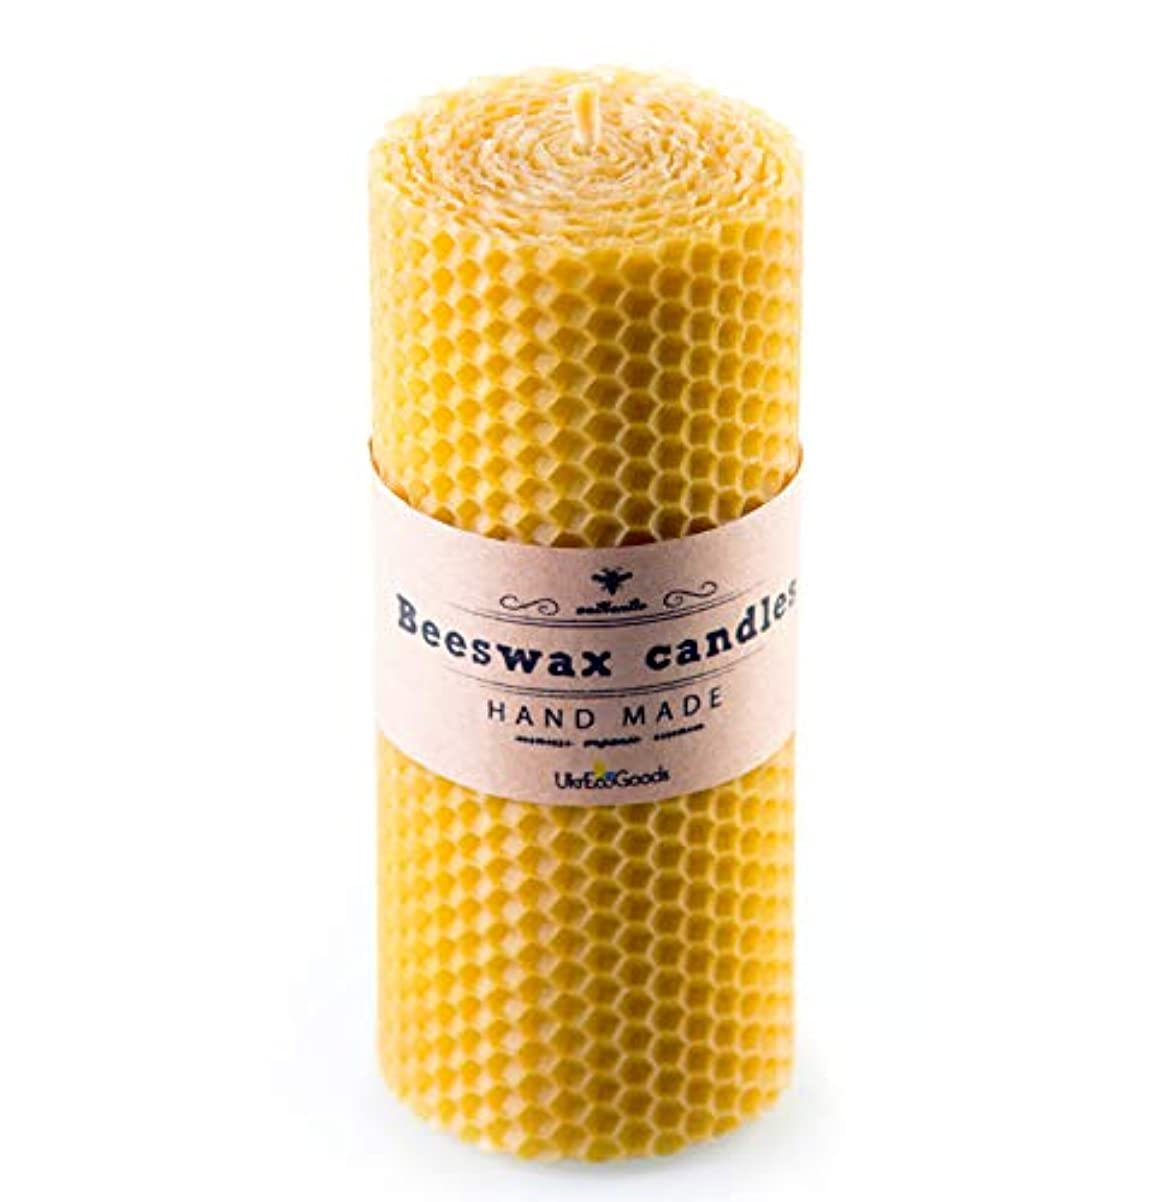 立場お手伝いさん読むUkrEcoGoods Beeswax Candle, 15cm Hand Rolled Pillar candle with pure natural wax scent.